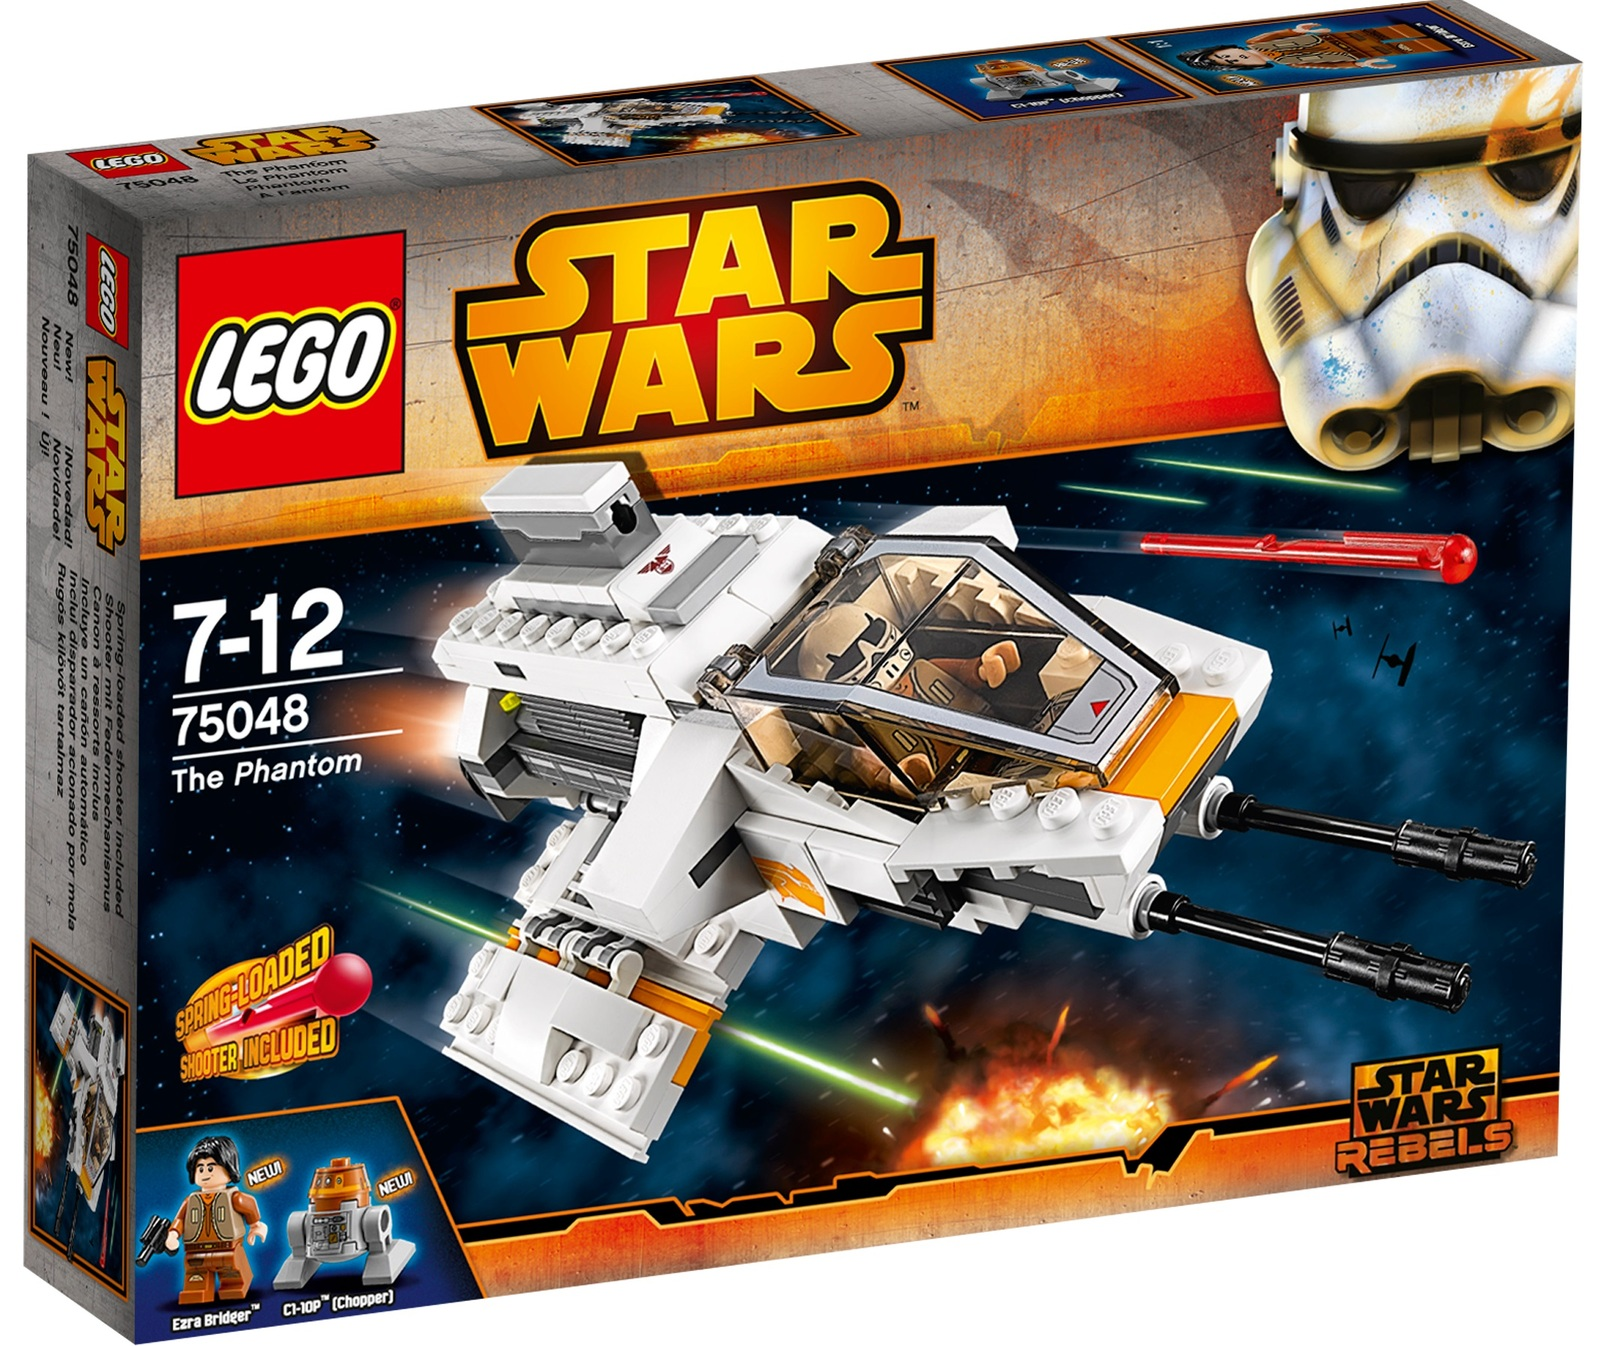 LEGO® brick STAR WARS™ REBELS 75048 EZRA BRIDGER Minifigure Helmet /& Blaster